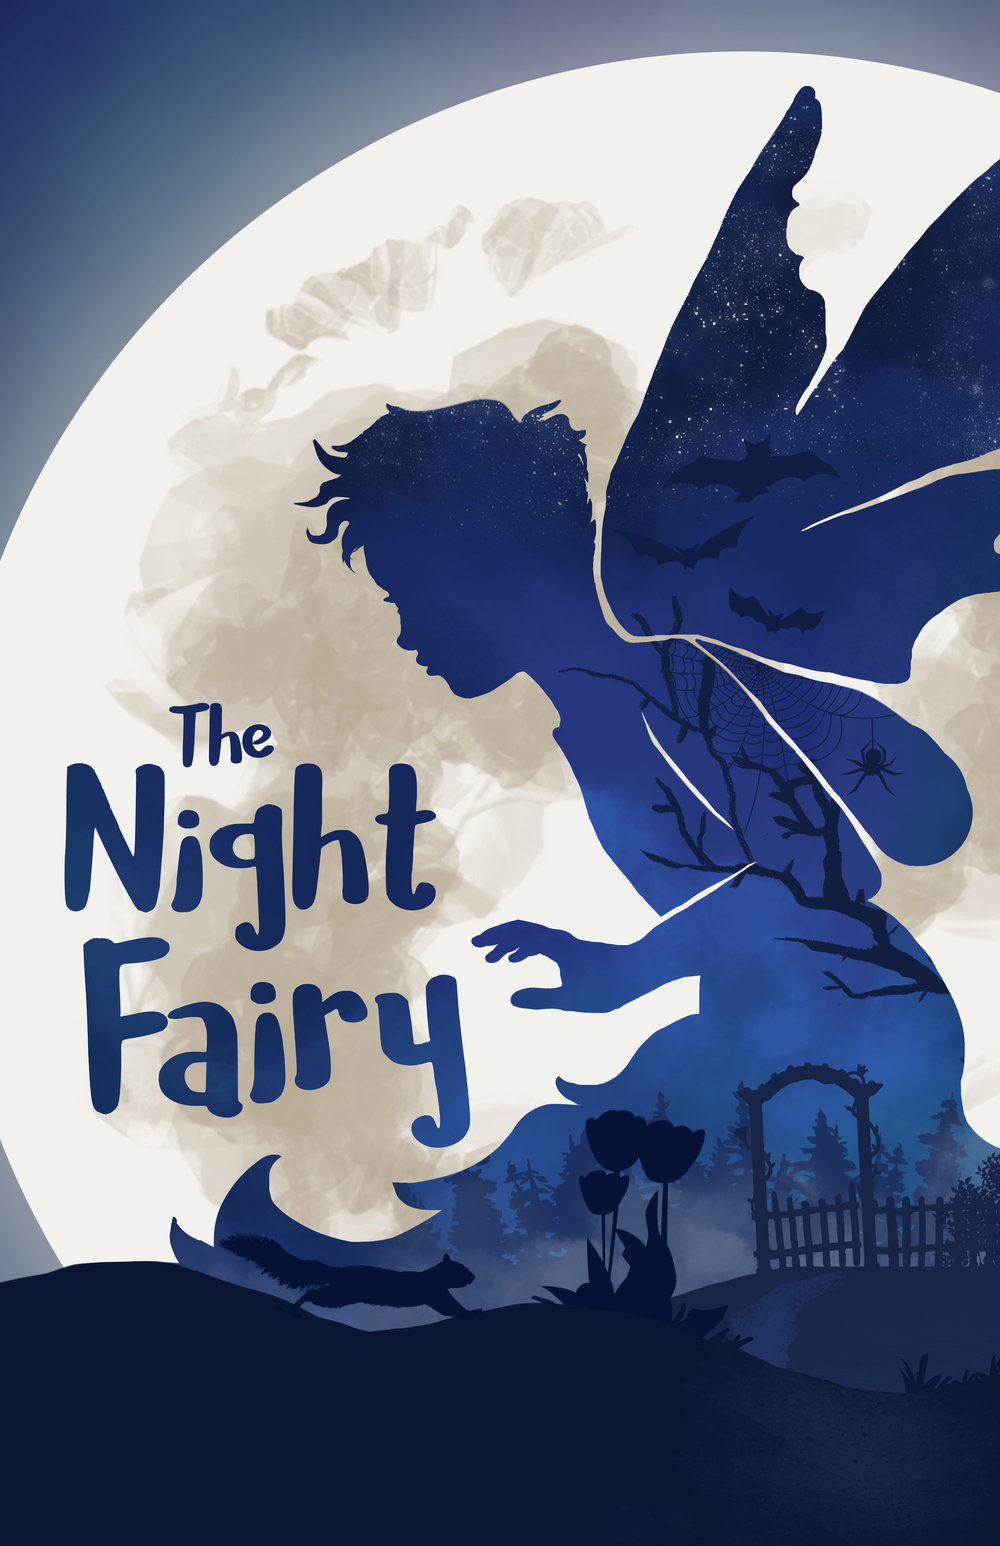 nightfairy_art_poster.jpg